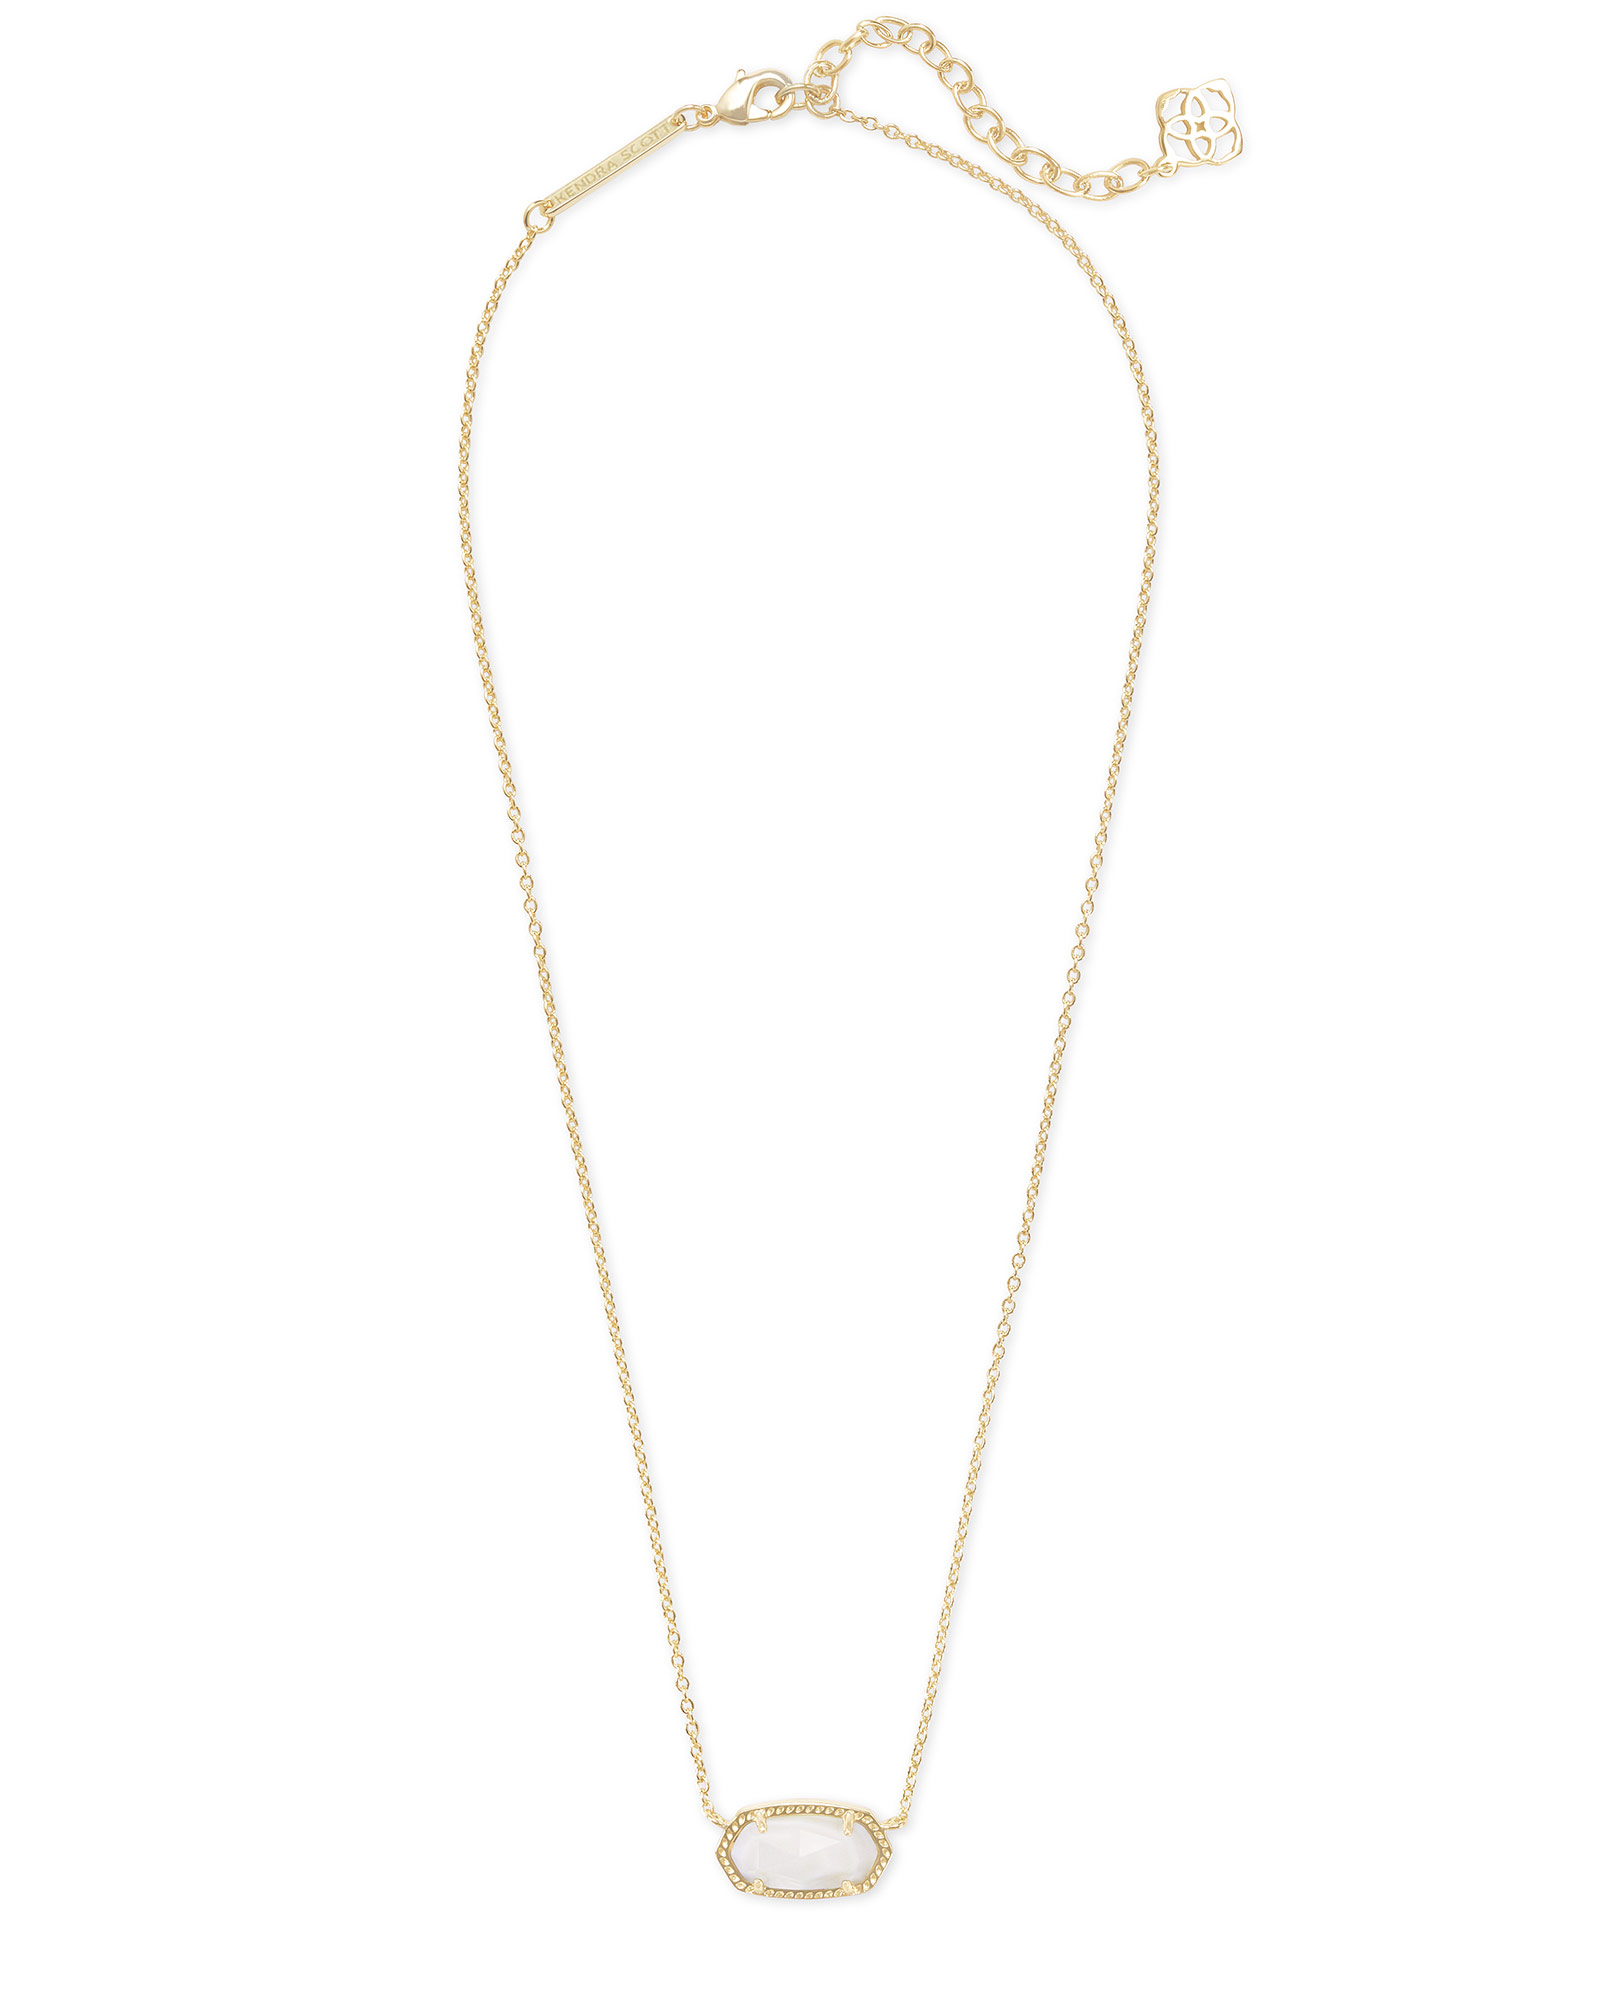 kendra scott elisa necklace gold with mother of pearl stone